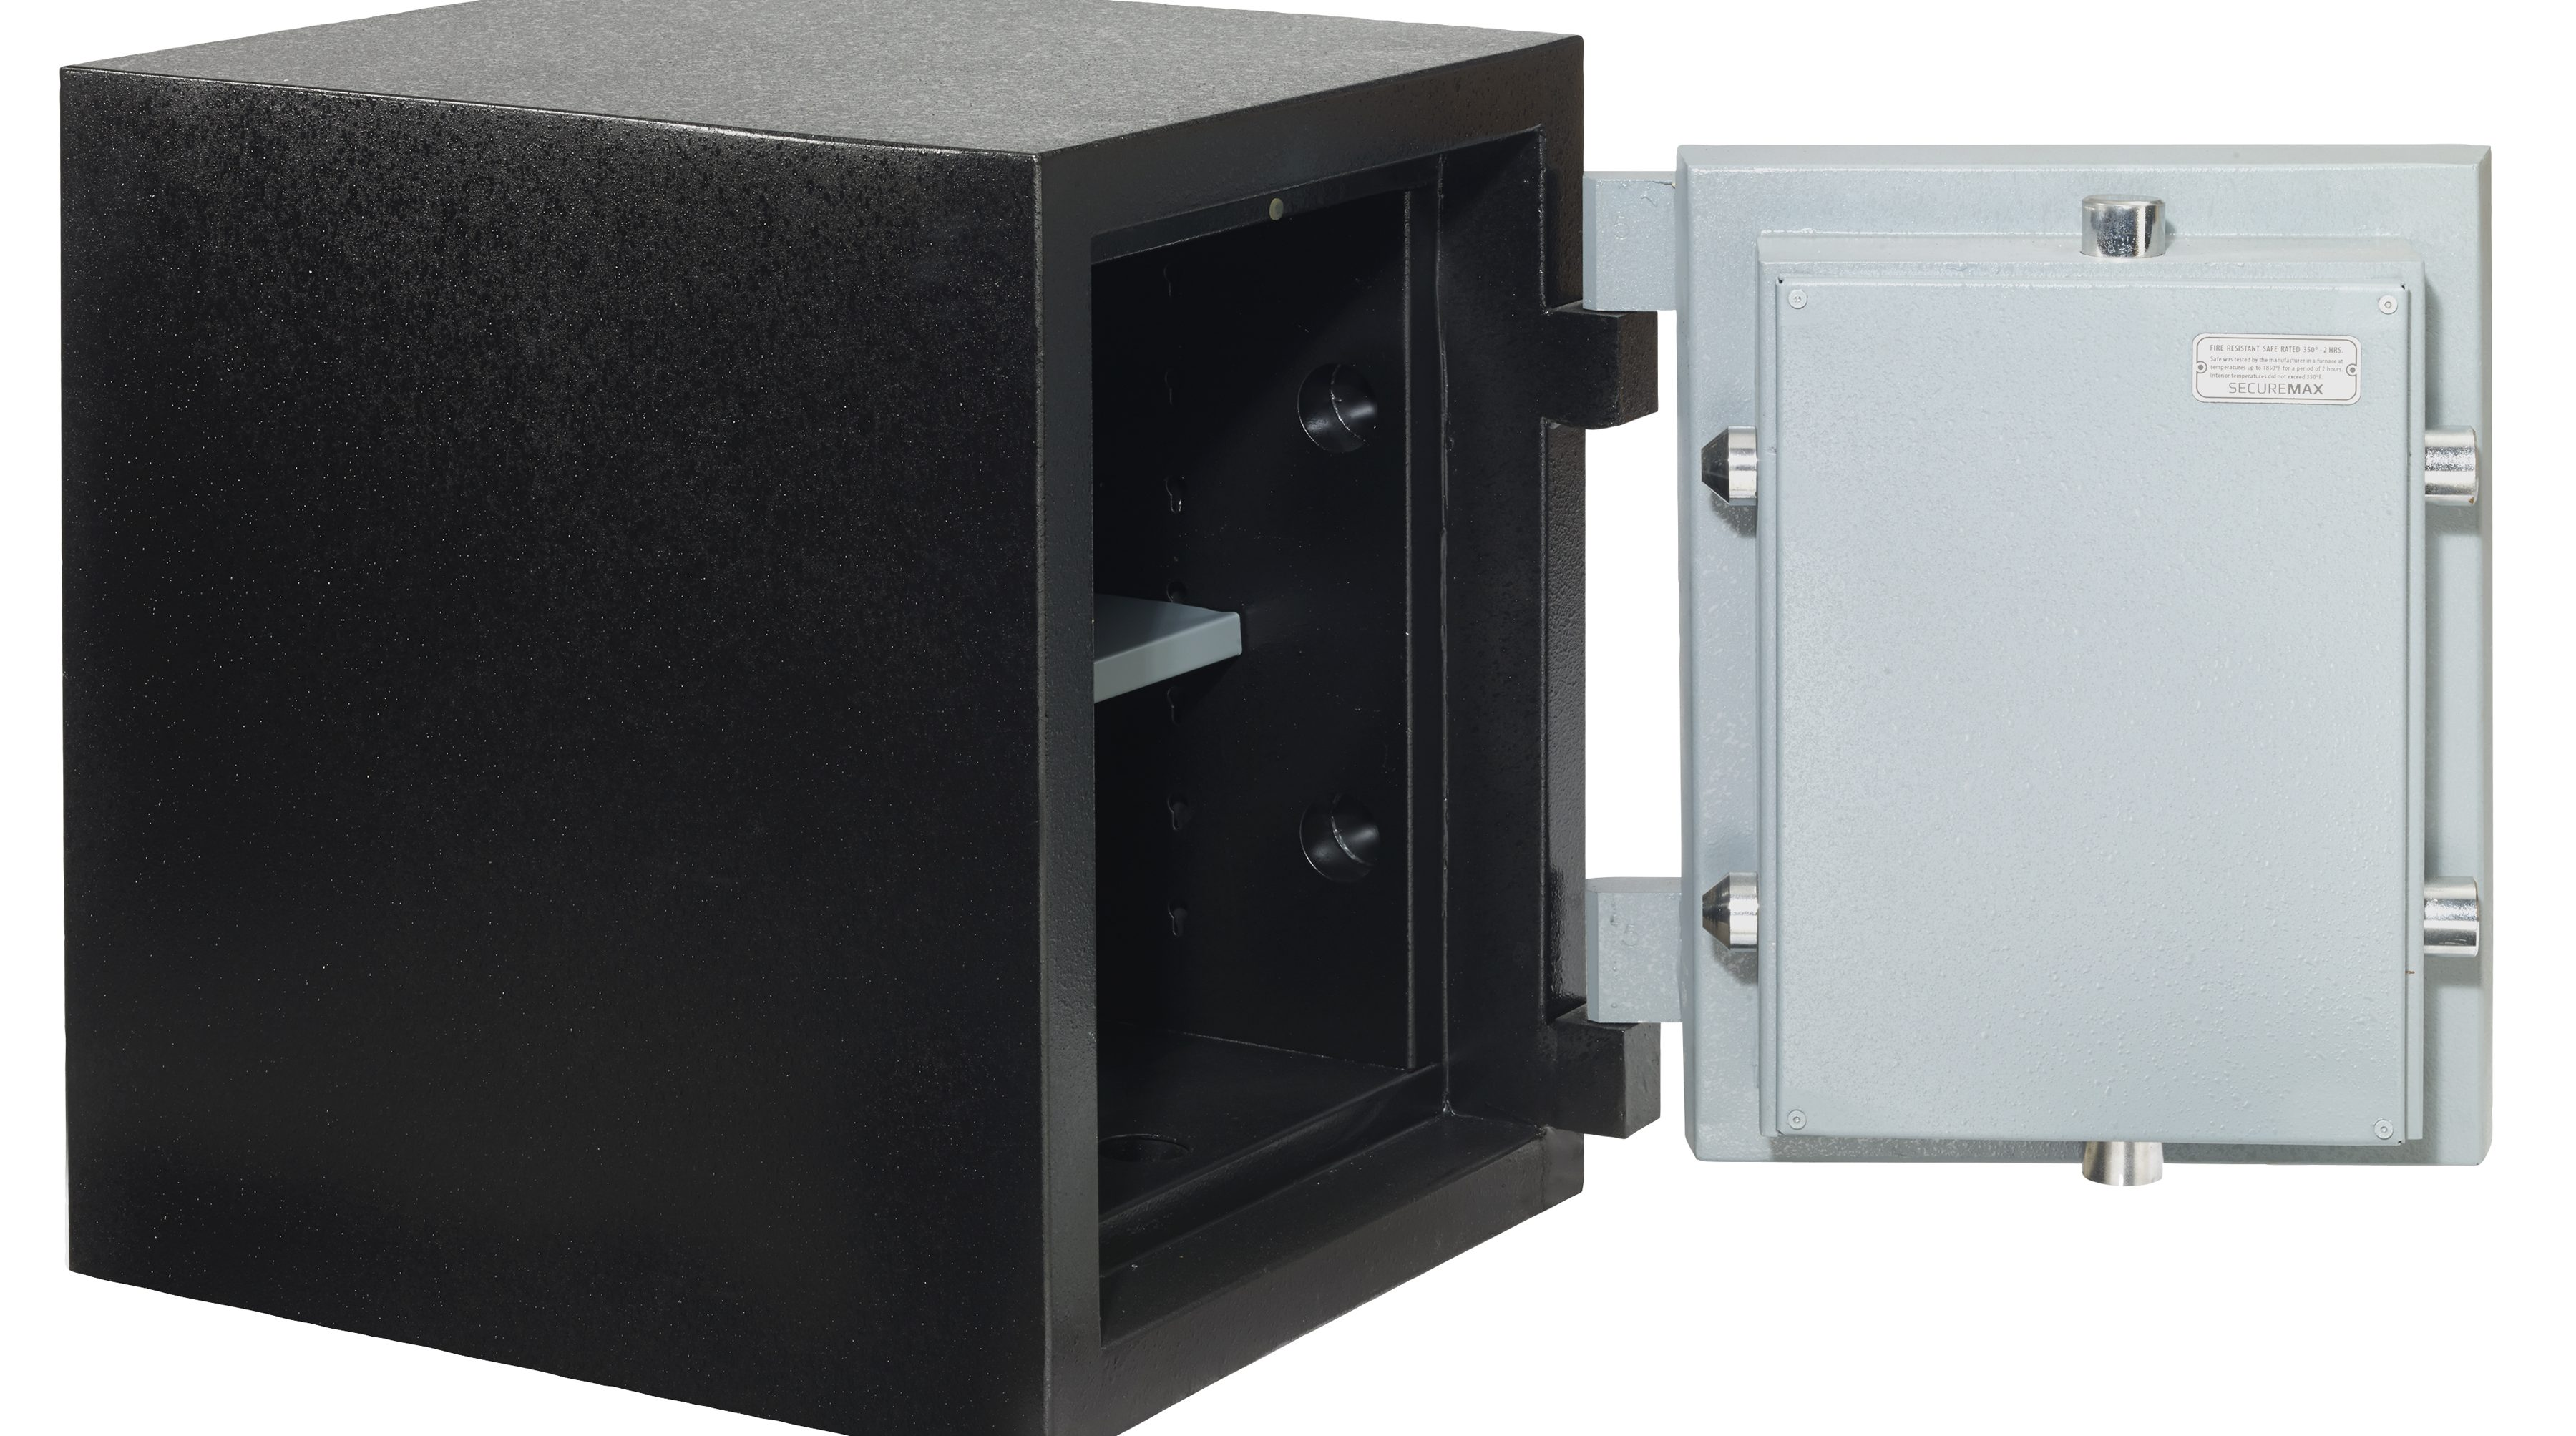 https://www.accusafes.com/wp-content/uploads/2018/10/HD-1612-SIDE-3600x2007.jpg